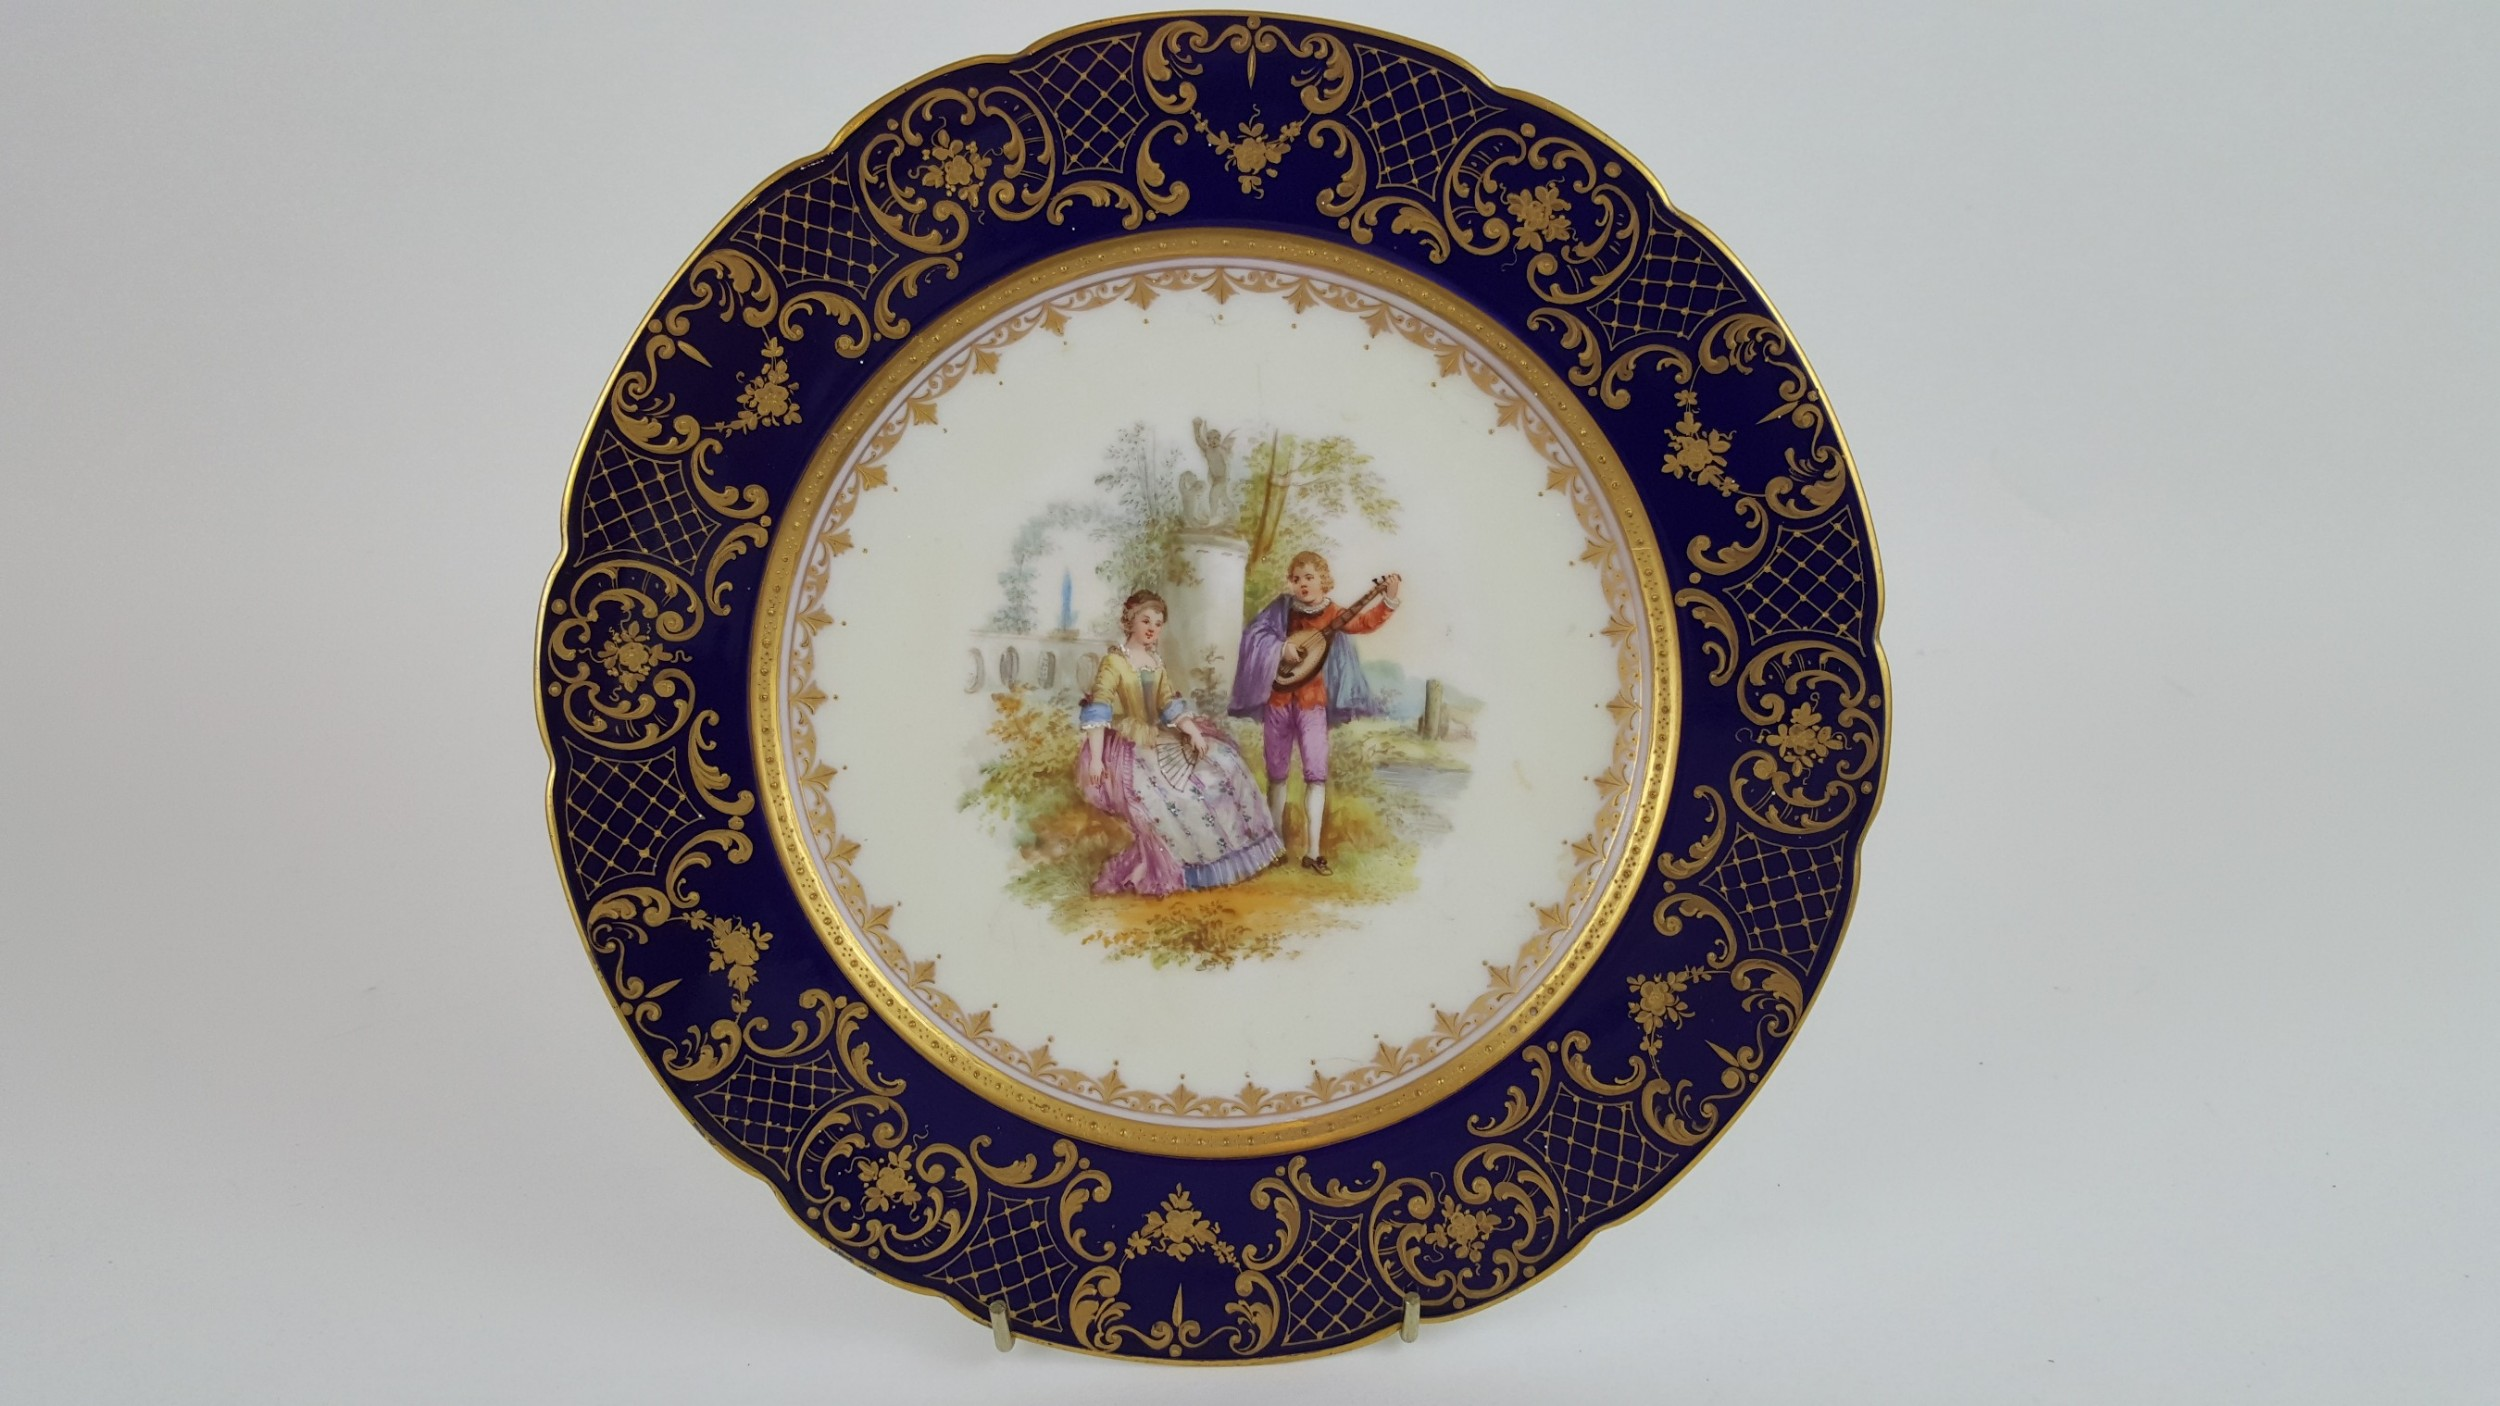 19th century dresden display plate